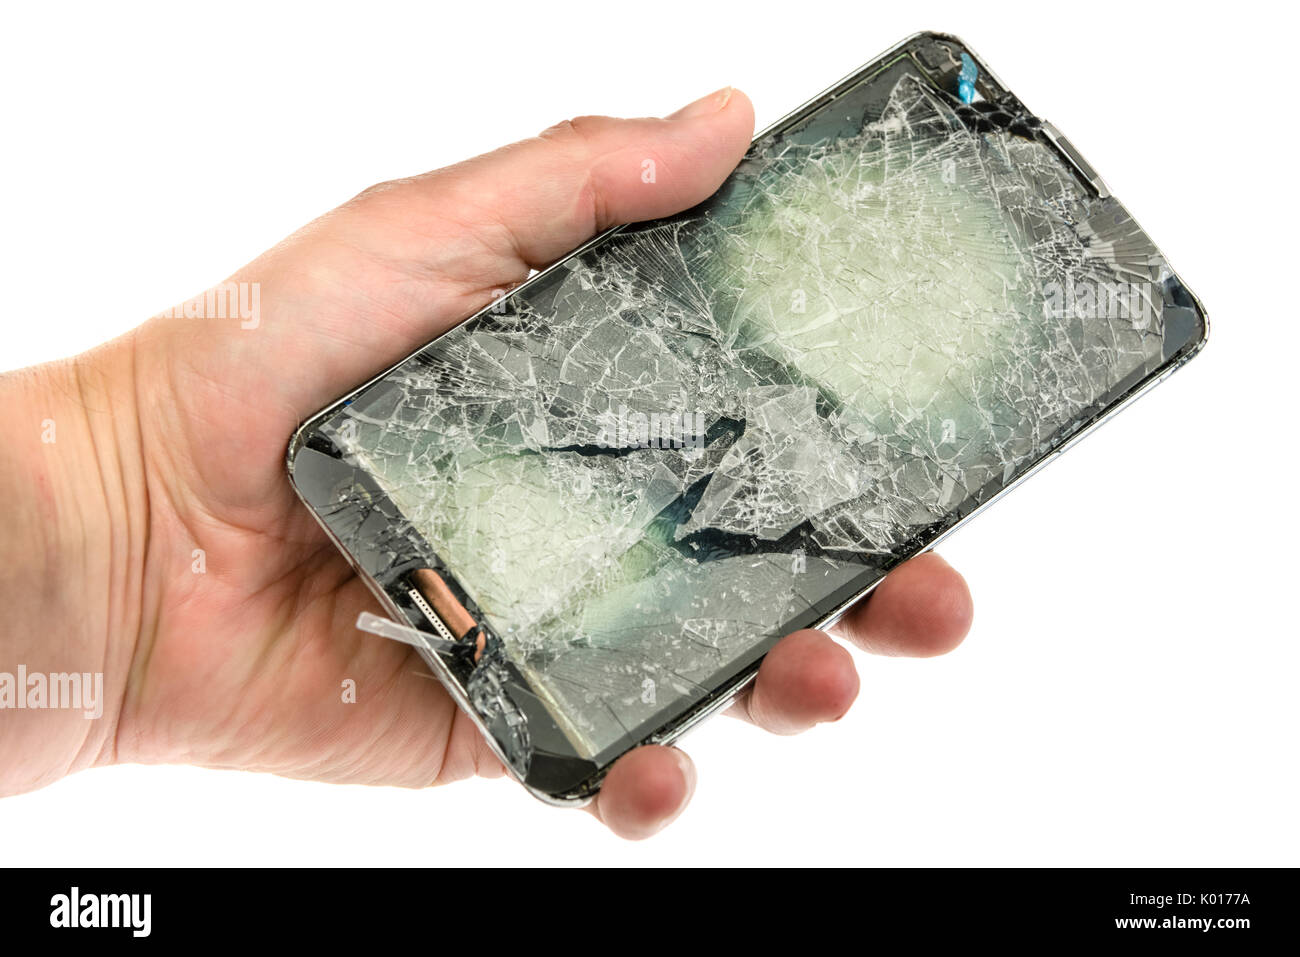 Mobile phone with a badly shattered screen after a serious fall. Stock Photo